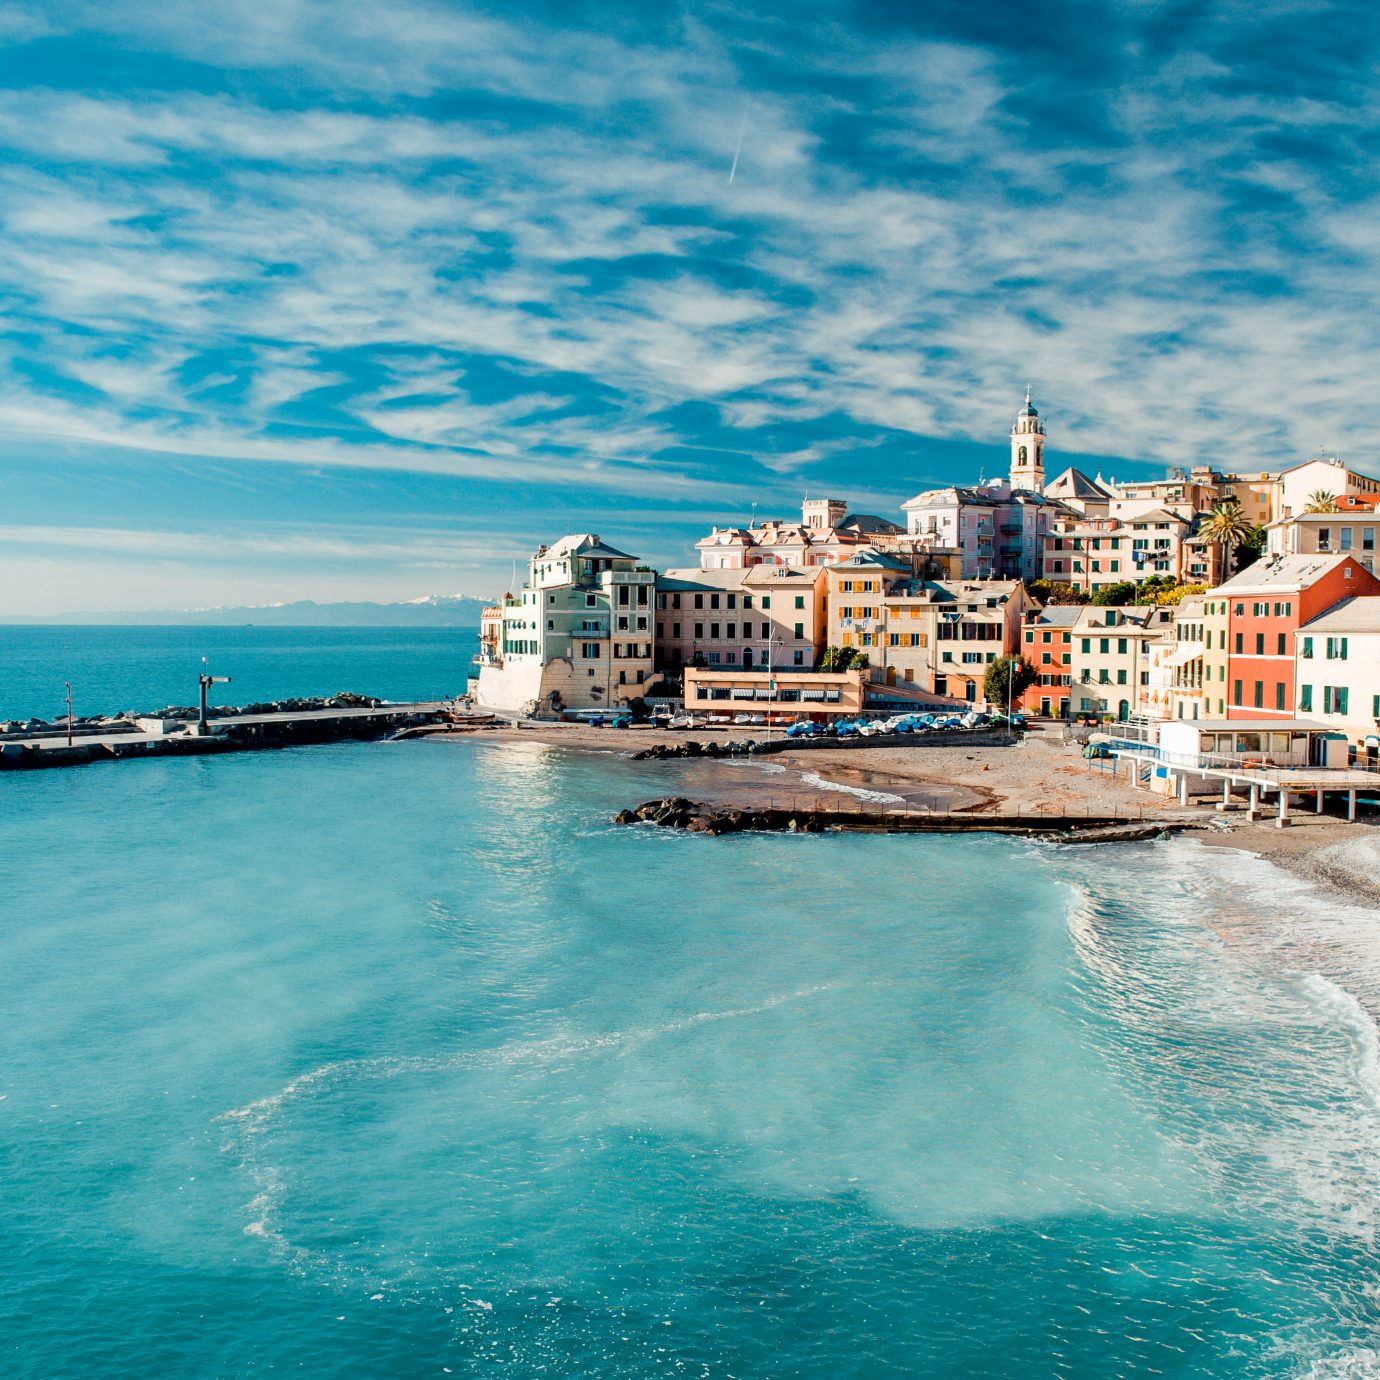 View of blue water in Genoa, Italy